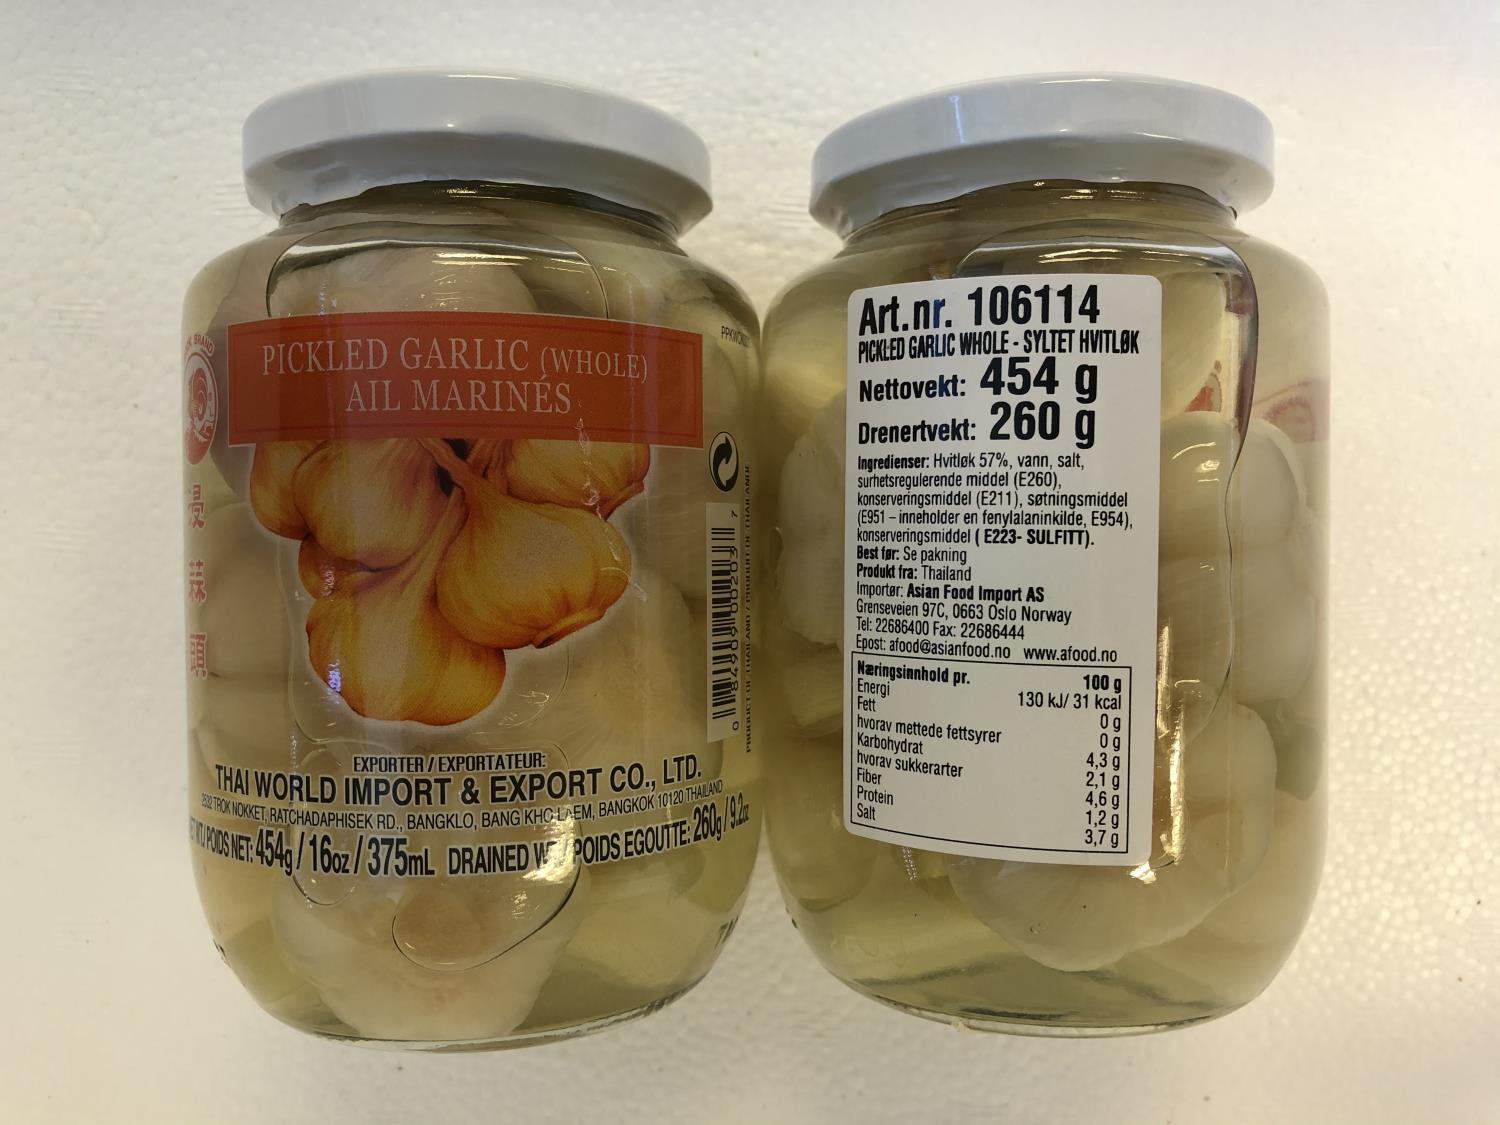 COCK Pickled Garlic Whole 454g